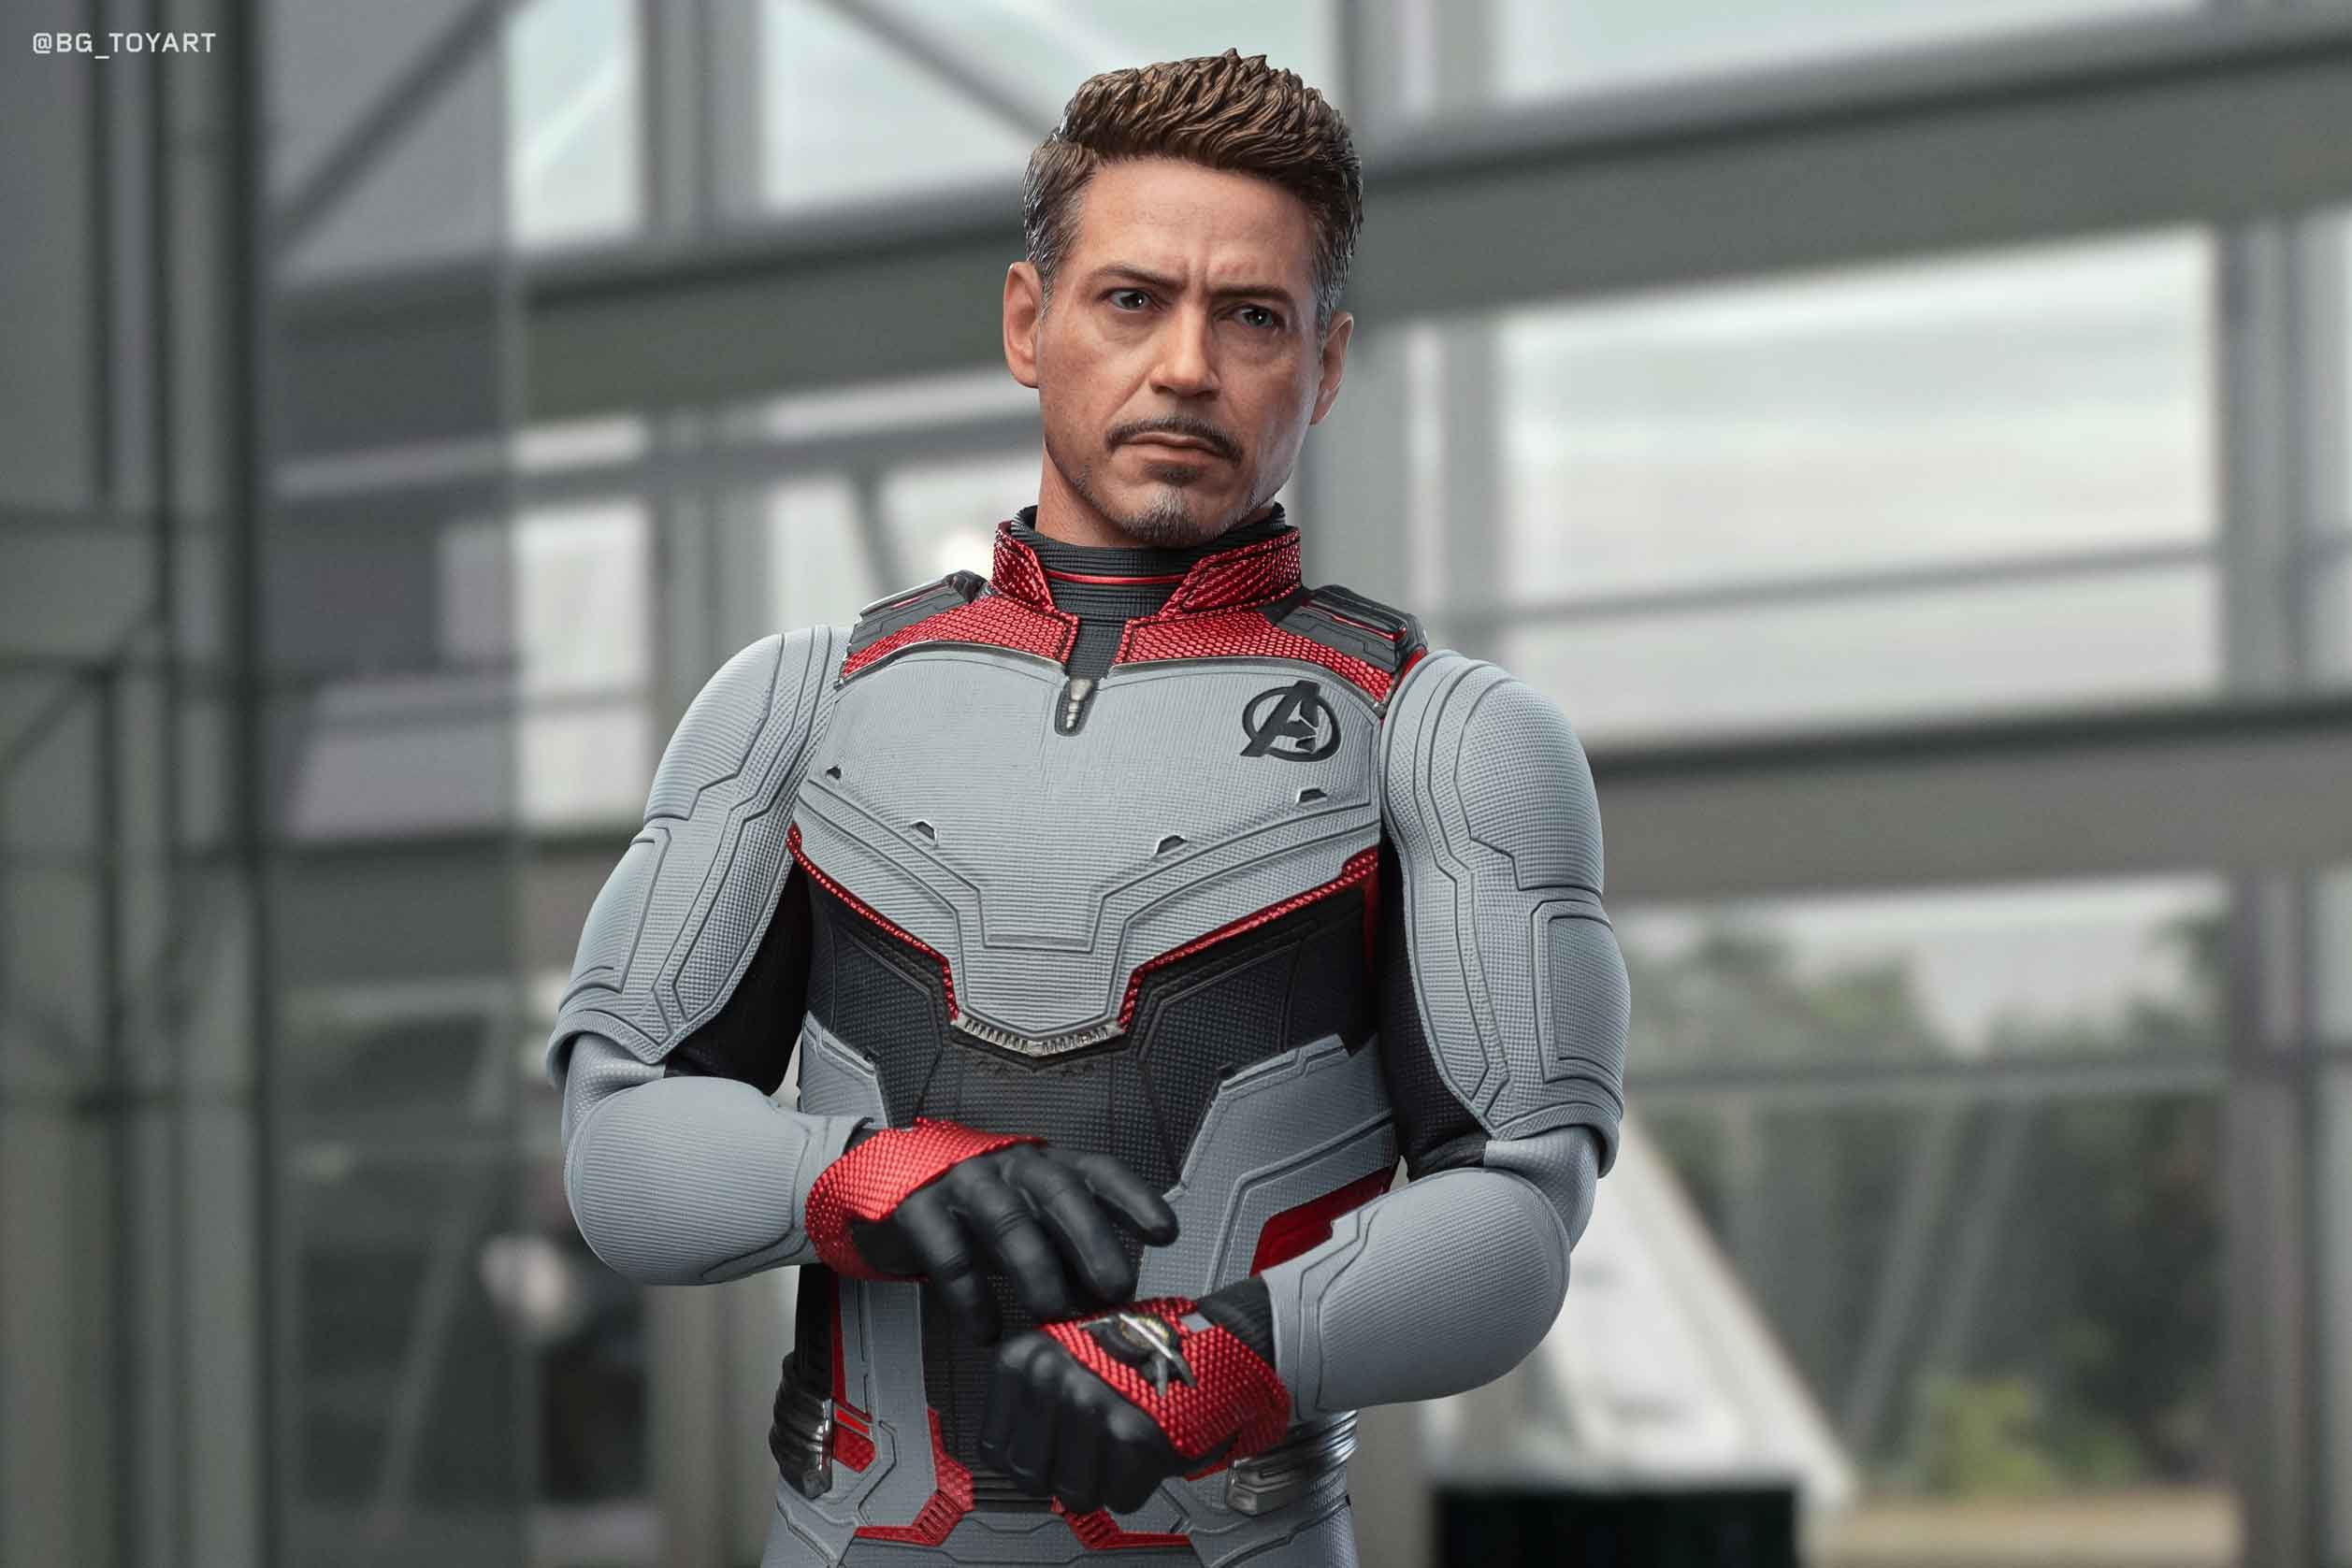 BG_TOYART_Teamsuit-Tony_02